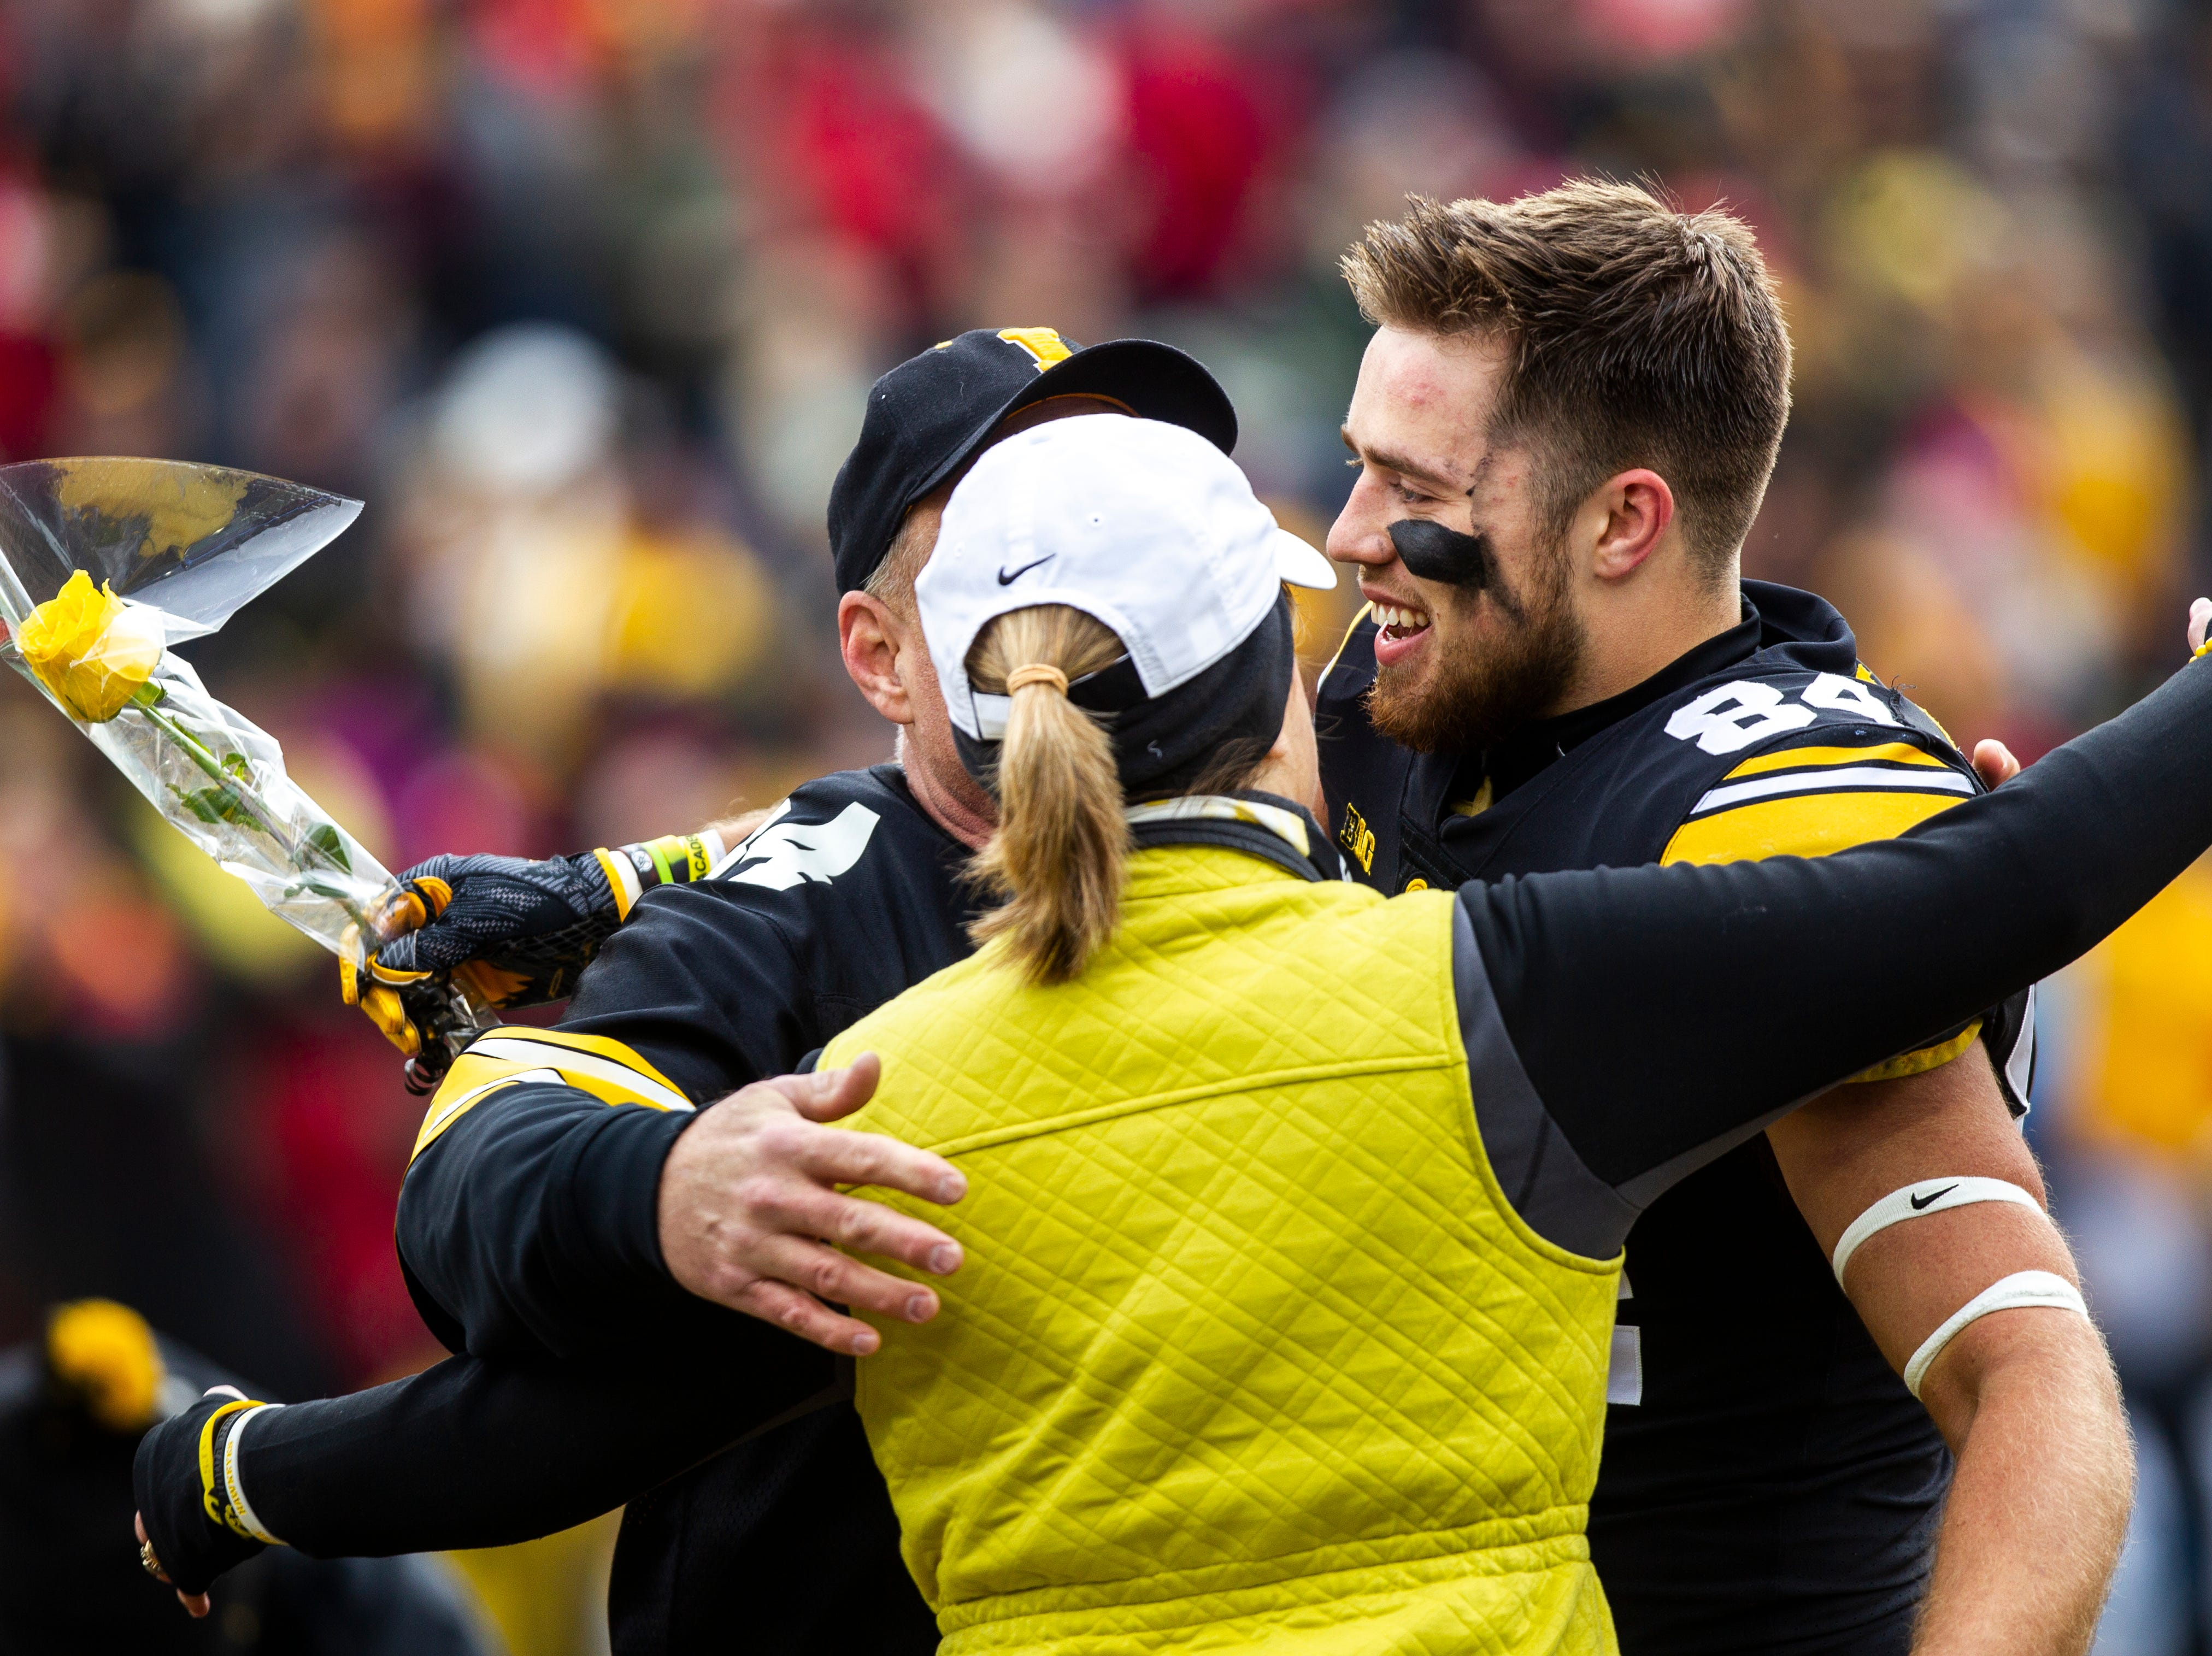 Iowa wide receiver Nick Easley (84) embraces his parents Allison Lemke and John Easley on senior day during a Big Ten Conference NCAA football game on Friday, Nov. 23, 2018, at Kinnick Stadium in Iowa City.